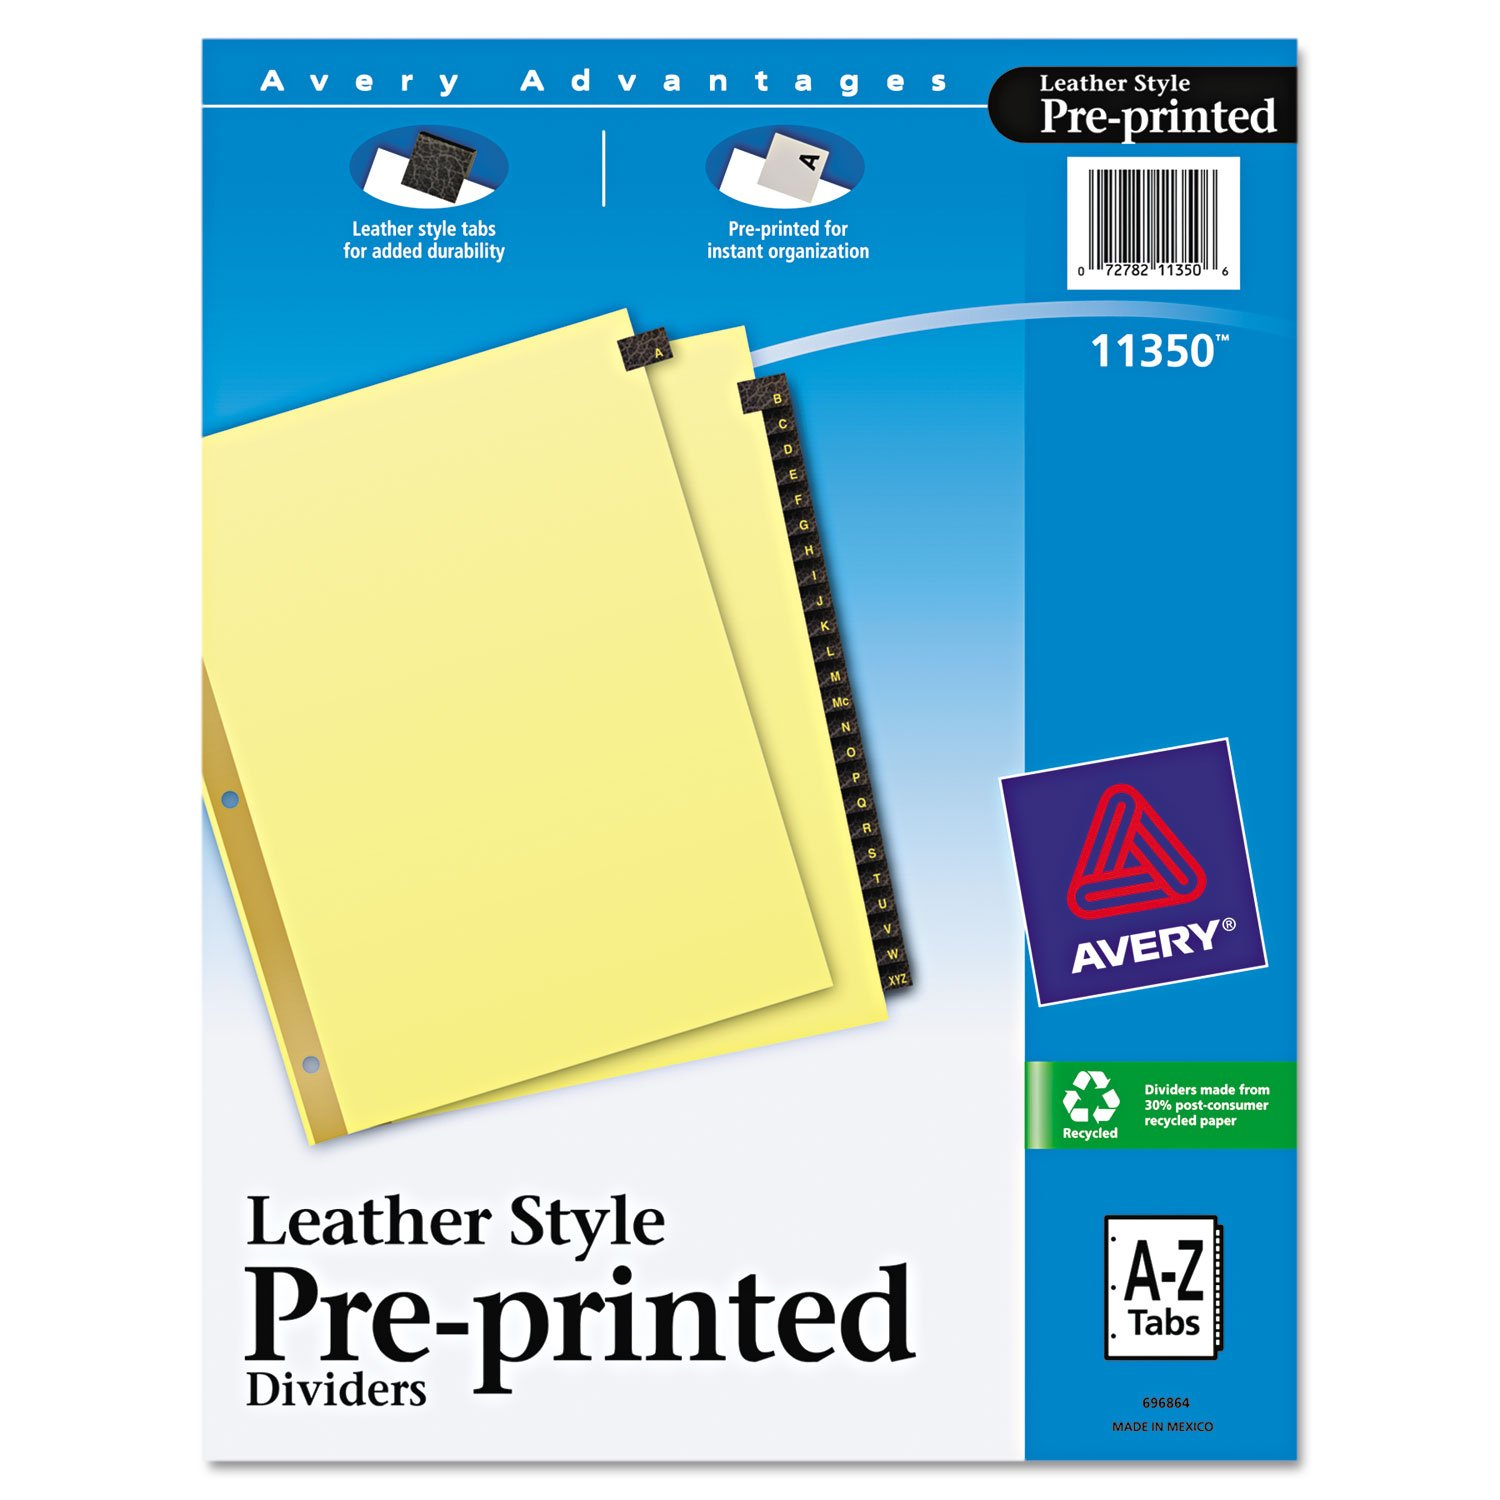 Avery 11350 Black Leather Tab Dividers, A-Z Tabs, 8.5 x 11, Buff, 25 Tabs/Set AVERY-DENNISON-KNM